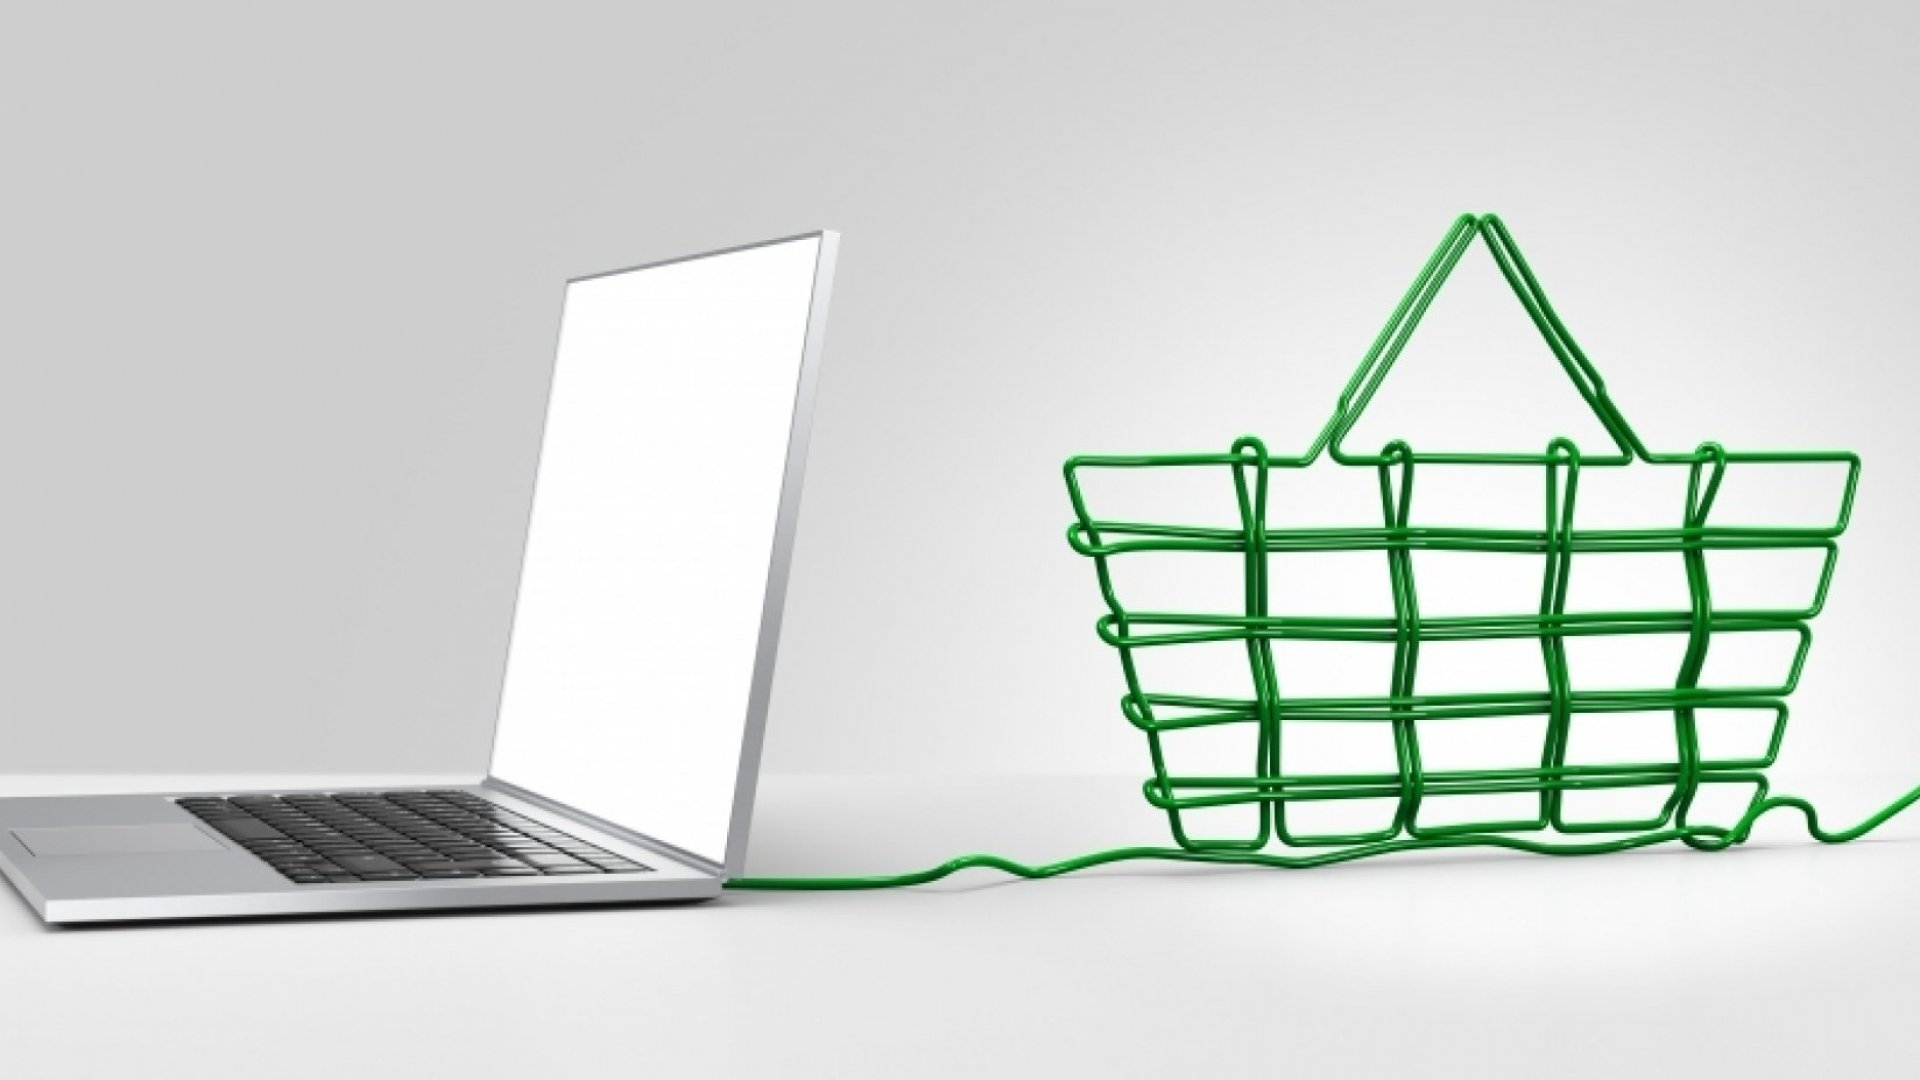 6 E-Commerce Startups to Watch in 2016